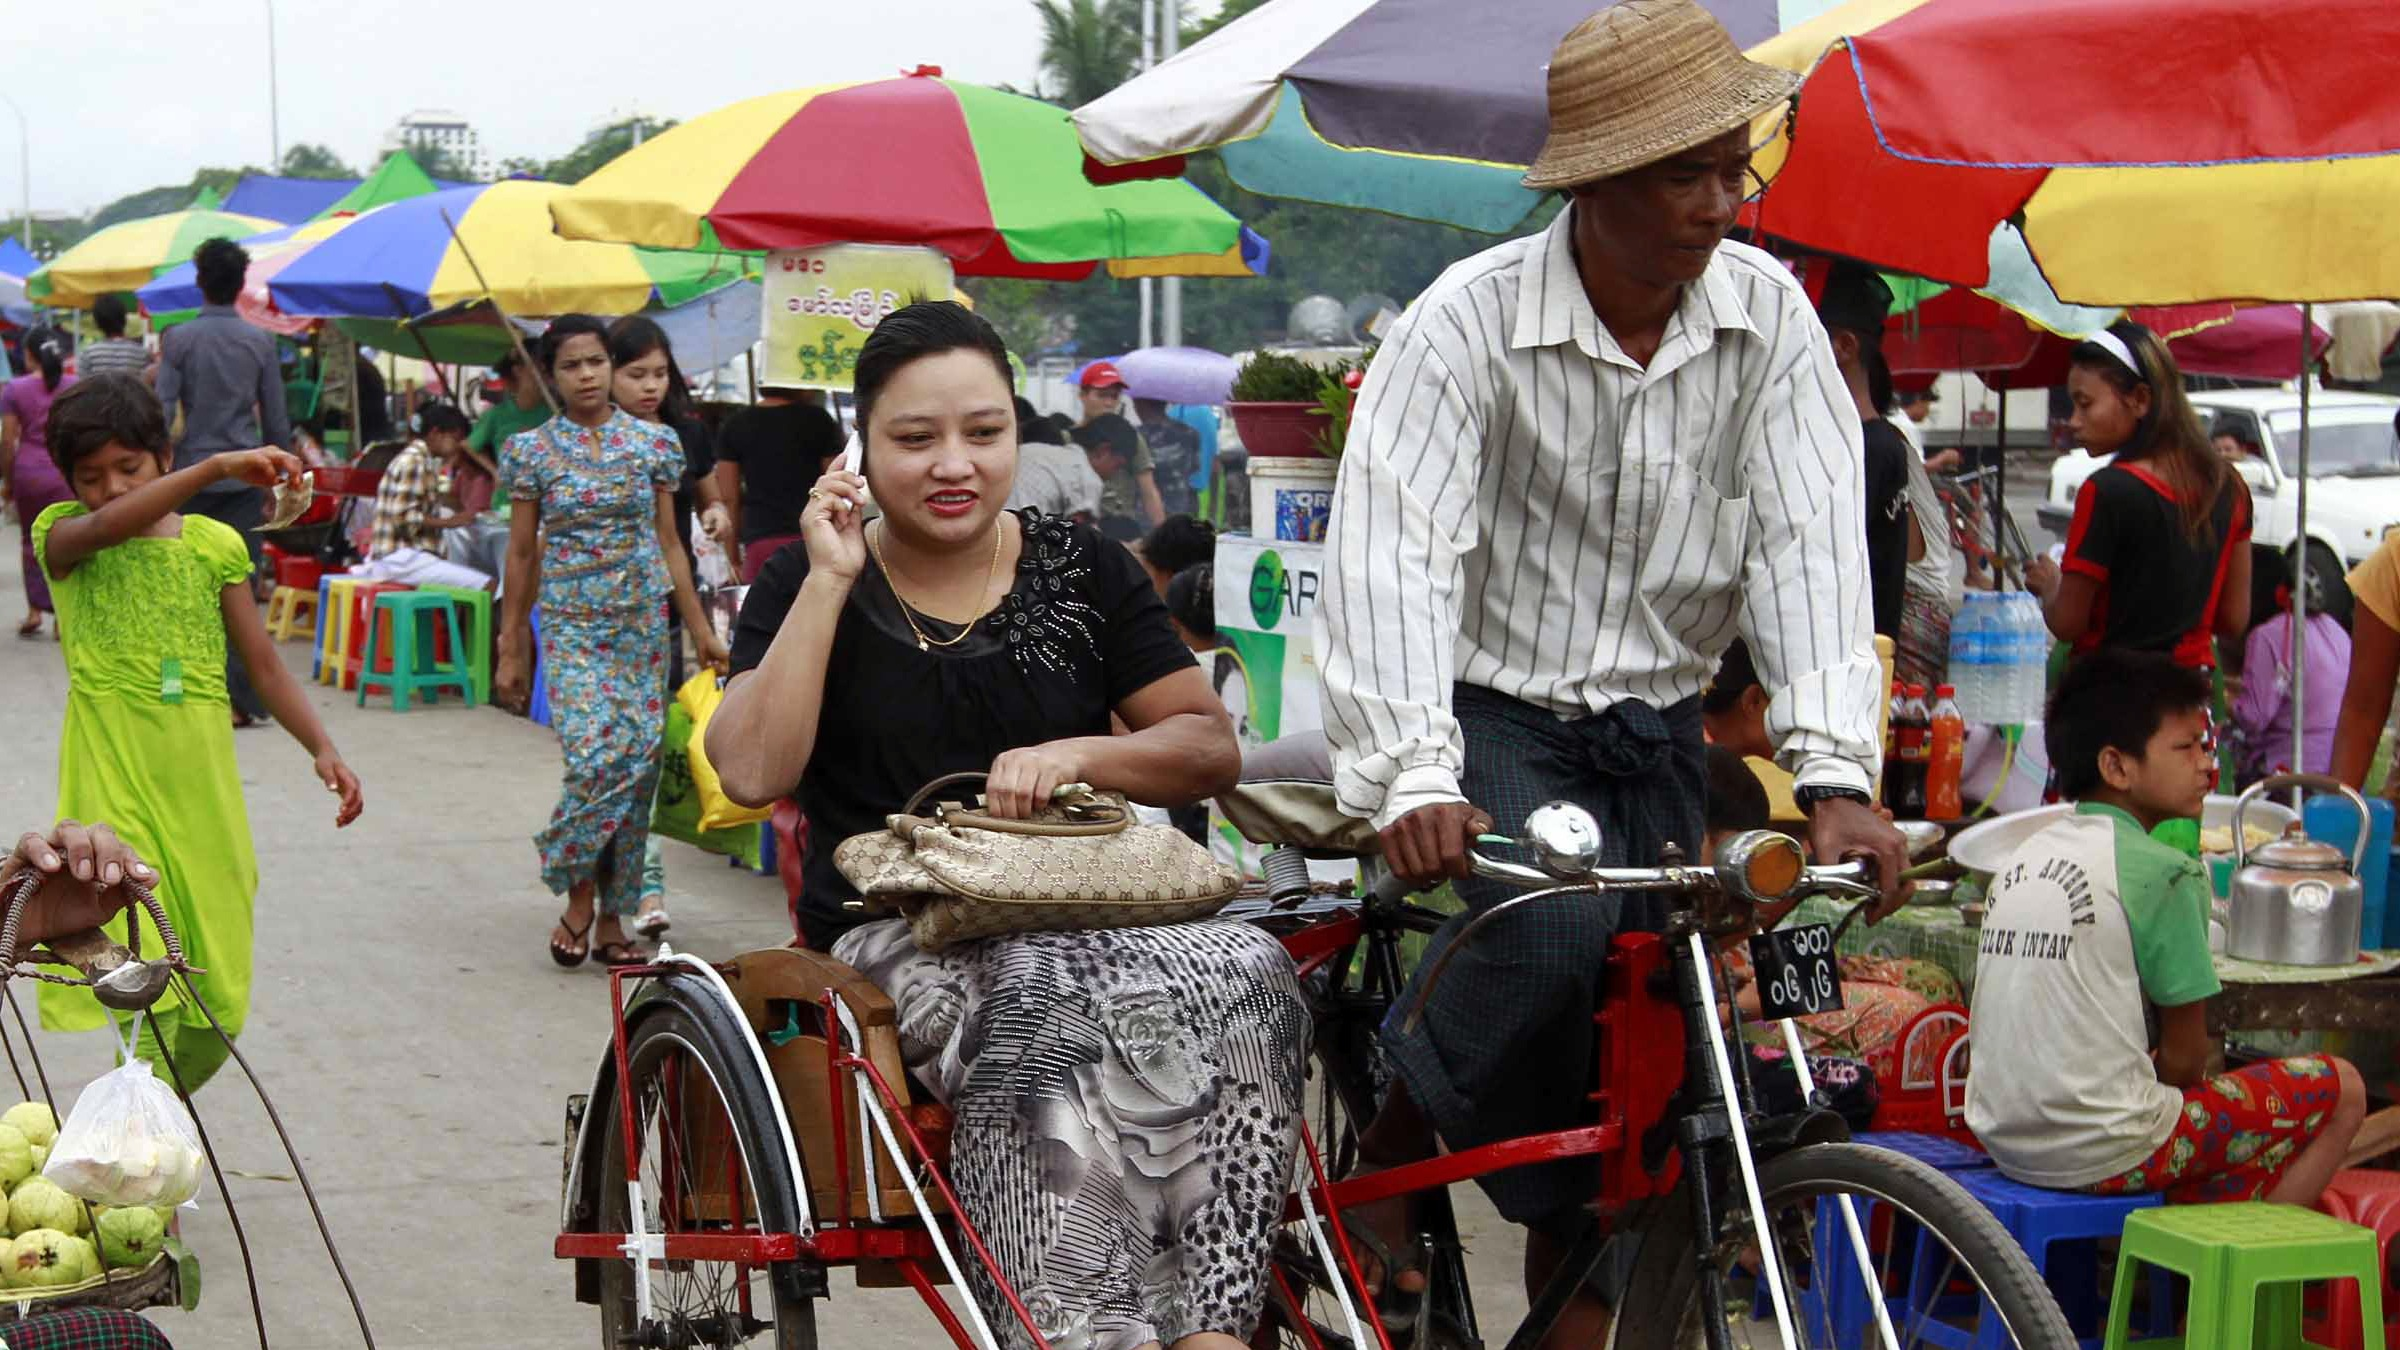 In this photo taken on Saturday, May.5, 2012, a Myanmar uses her cell phone as she rides a trishaw at a local bazaar in Yangon, Myanmar. (AP Photo/Khin Maung Win)